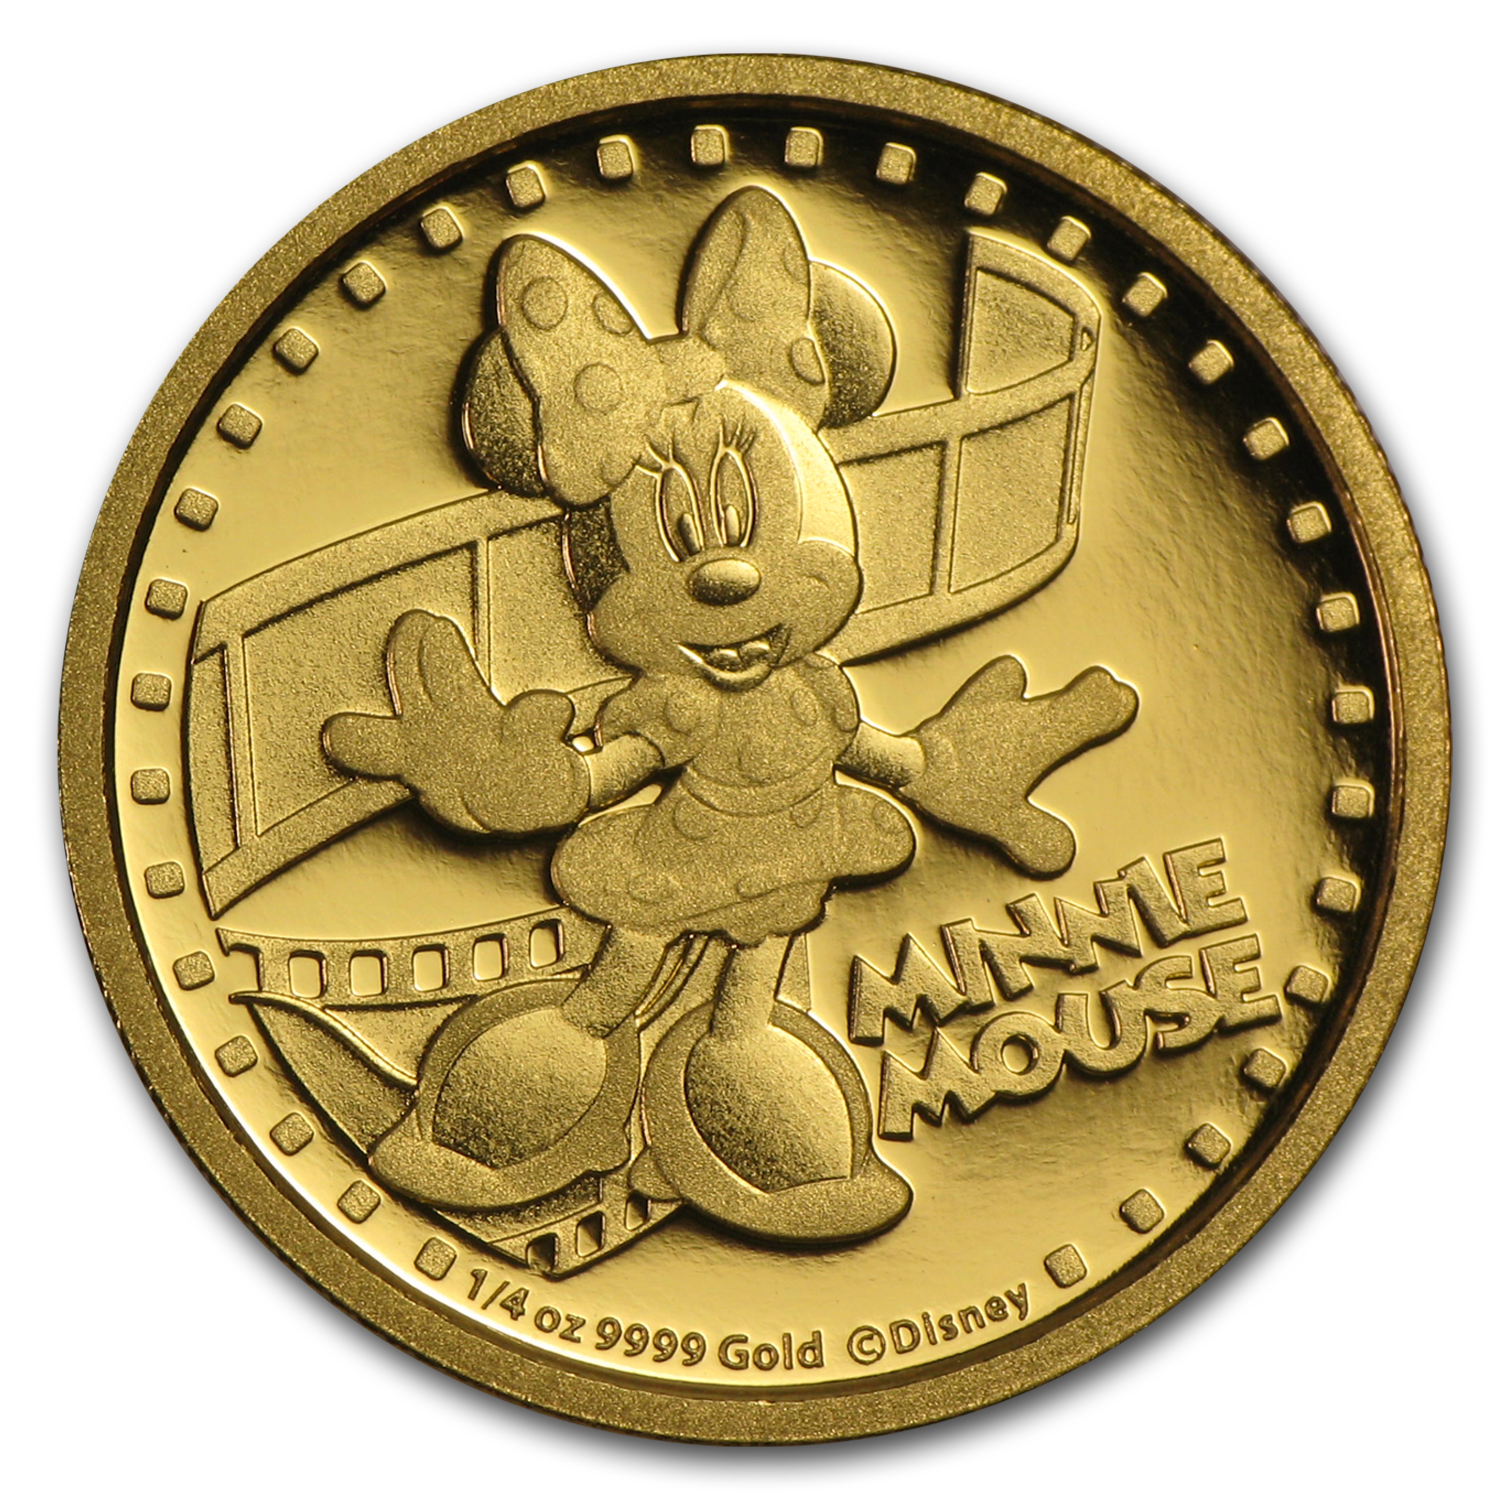 2014 Niue 1/4 oz Proof Gold $25 Disney Minnie Mouse